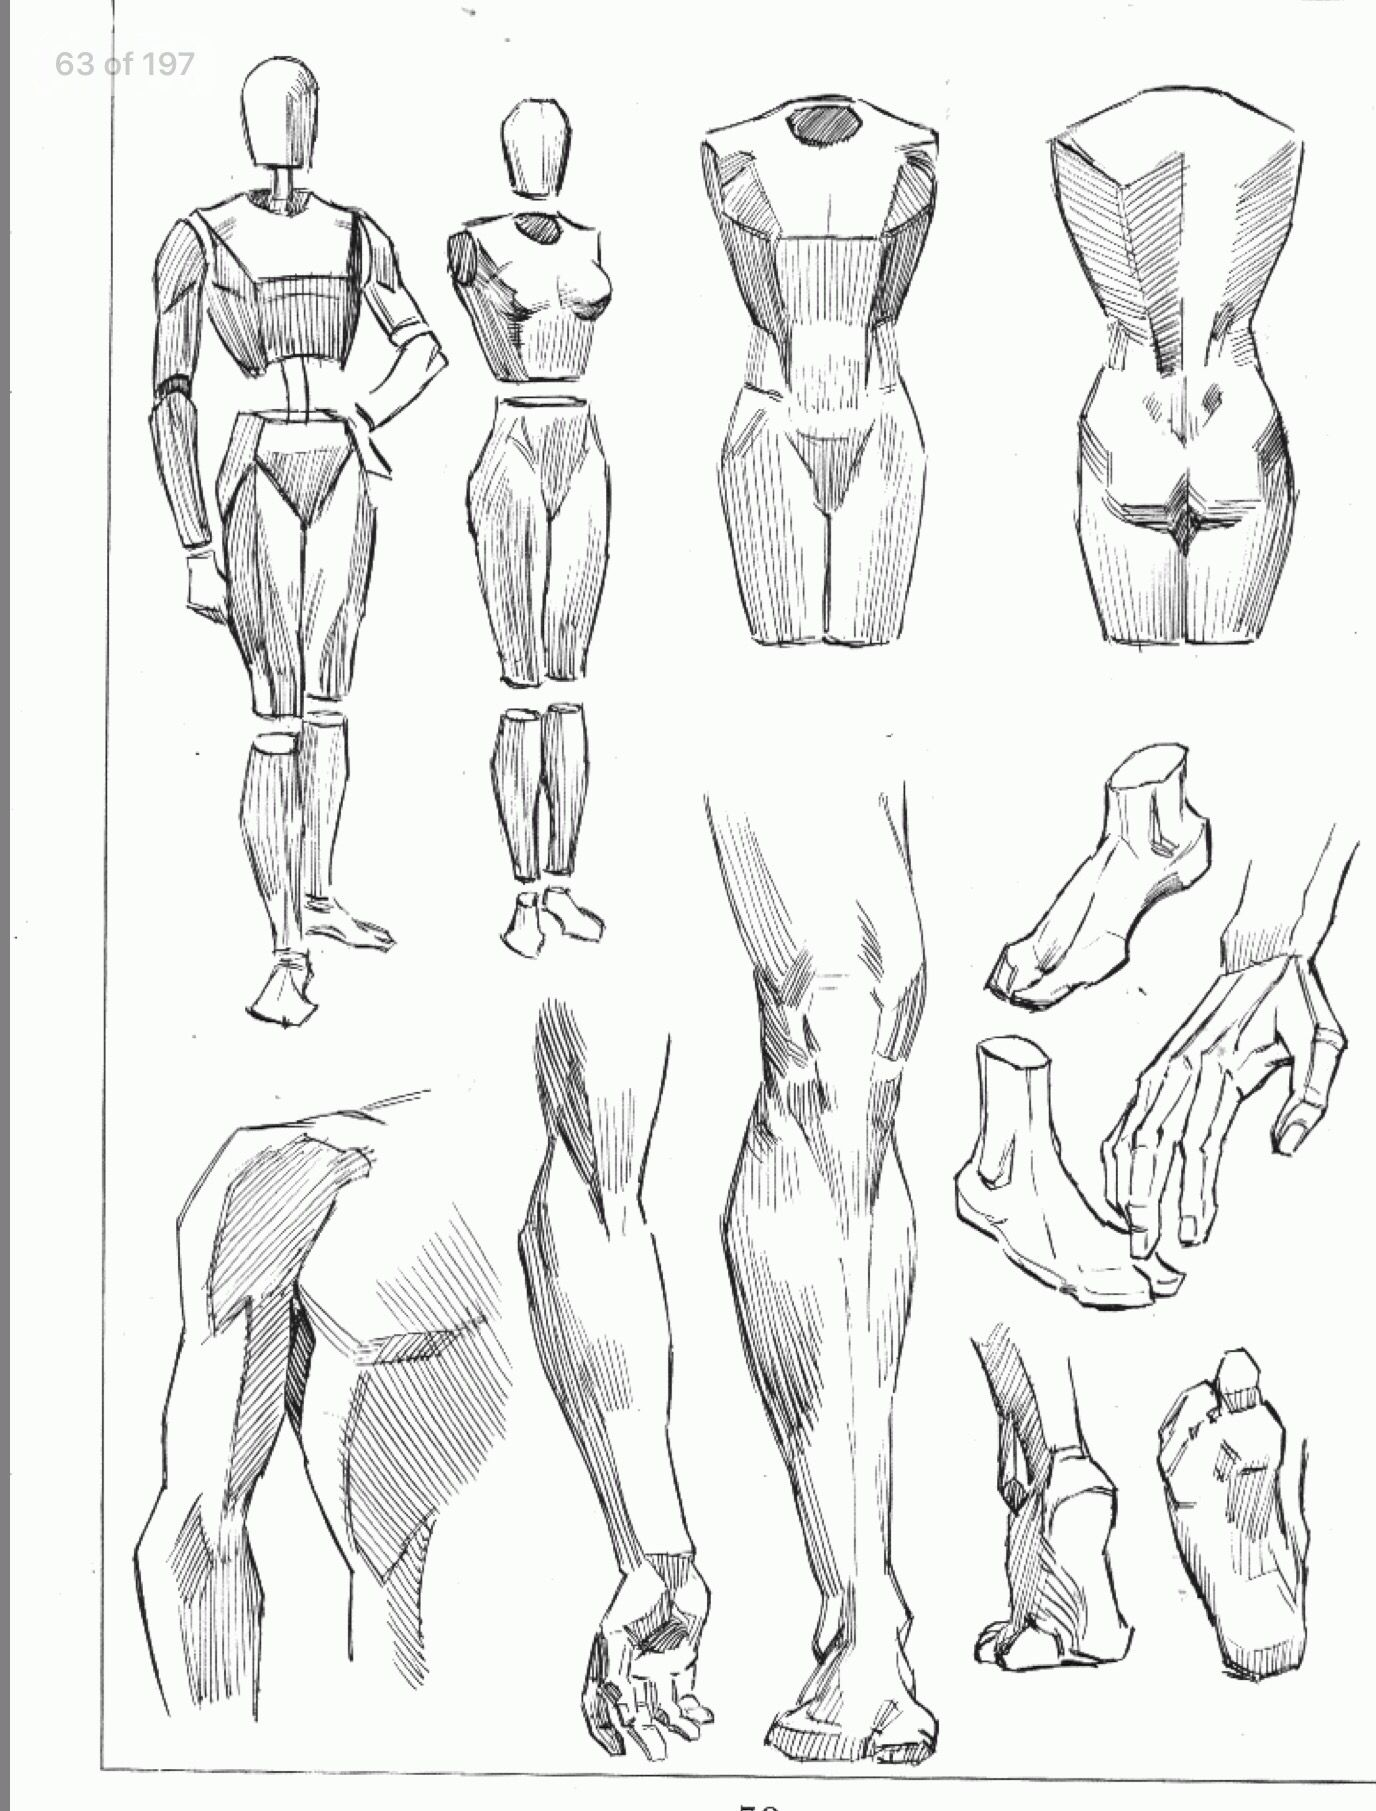 Pin by Jason Michael on drawing | Pinterest | Anatomy, Andrew loomis ...